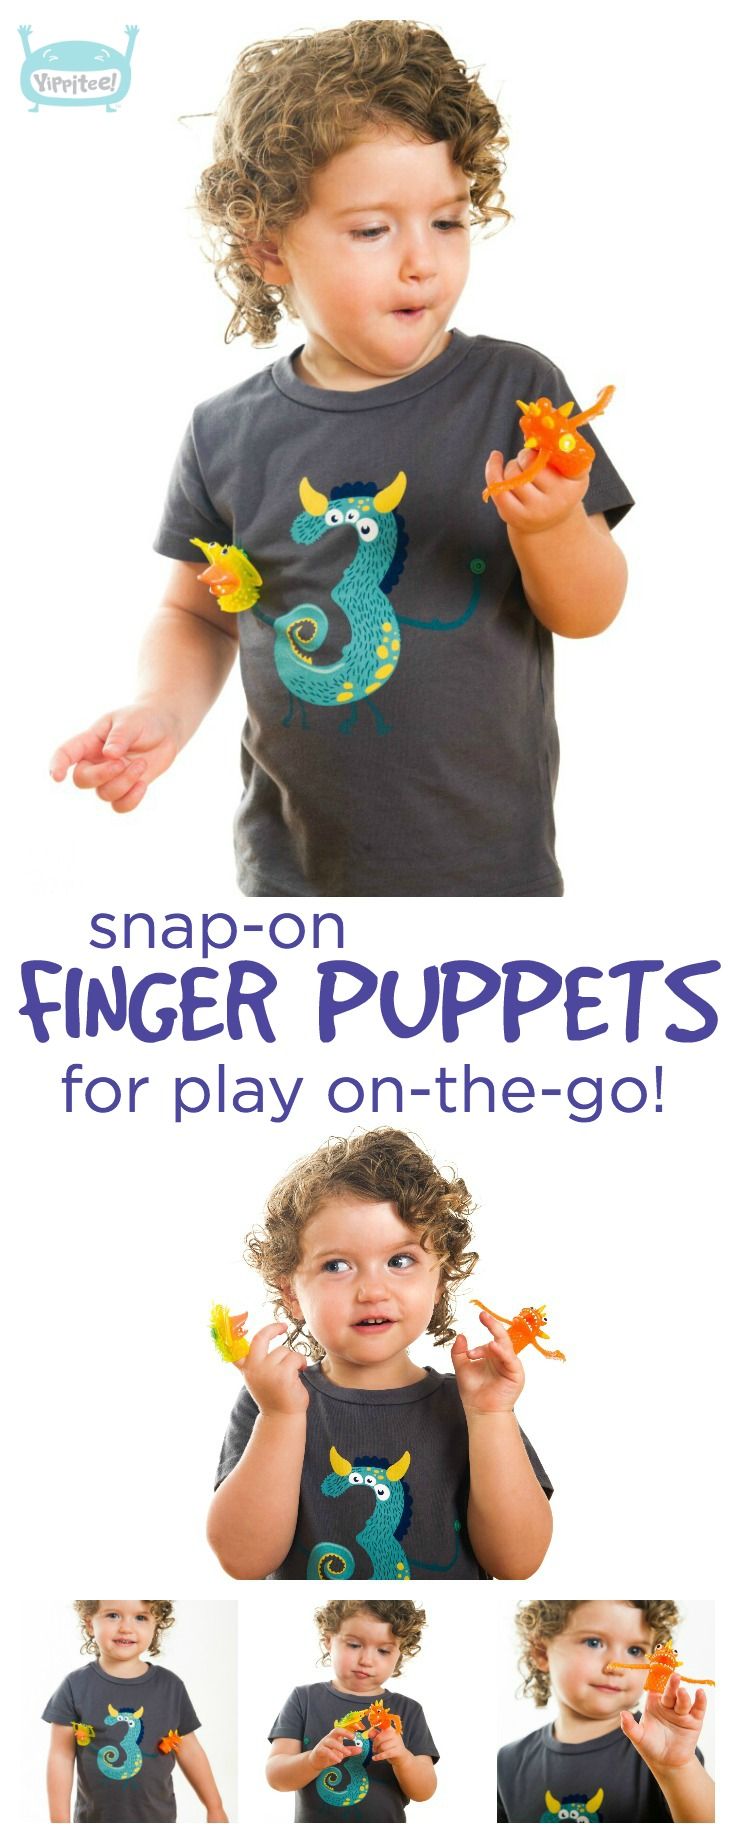 The coolest monster 3rd birthday shirt there ever was! Detachable finger puppets snap on and off to keep your kiddo entertained anywhere. // three year old birthday shirt, 3 year old birthday shirt, 3rd birthday shirt, third birthday shirt, kids birthday shirts, birthday girl shirt, birthday boy shirt, toddler birthday shirt #birthdayshirt #kidsbirthdayshirts #birthdaygirl #birthdayboy #toddlerbirthday #monsterparty #monsterbirthday